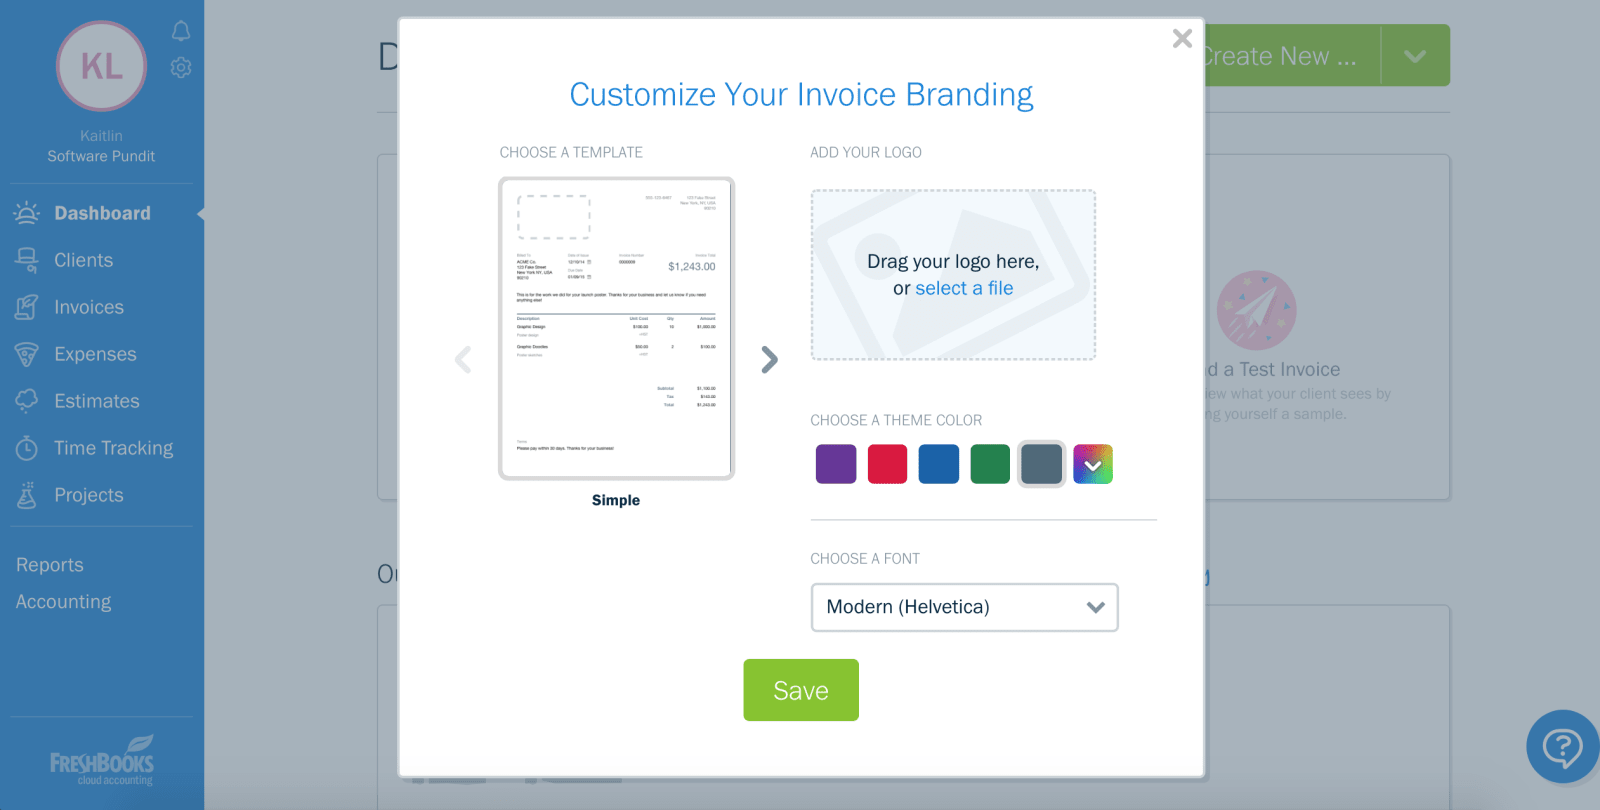 Freshbooks How To Add Expense Receipt To Invoice